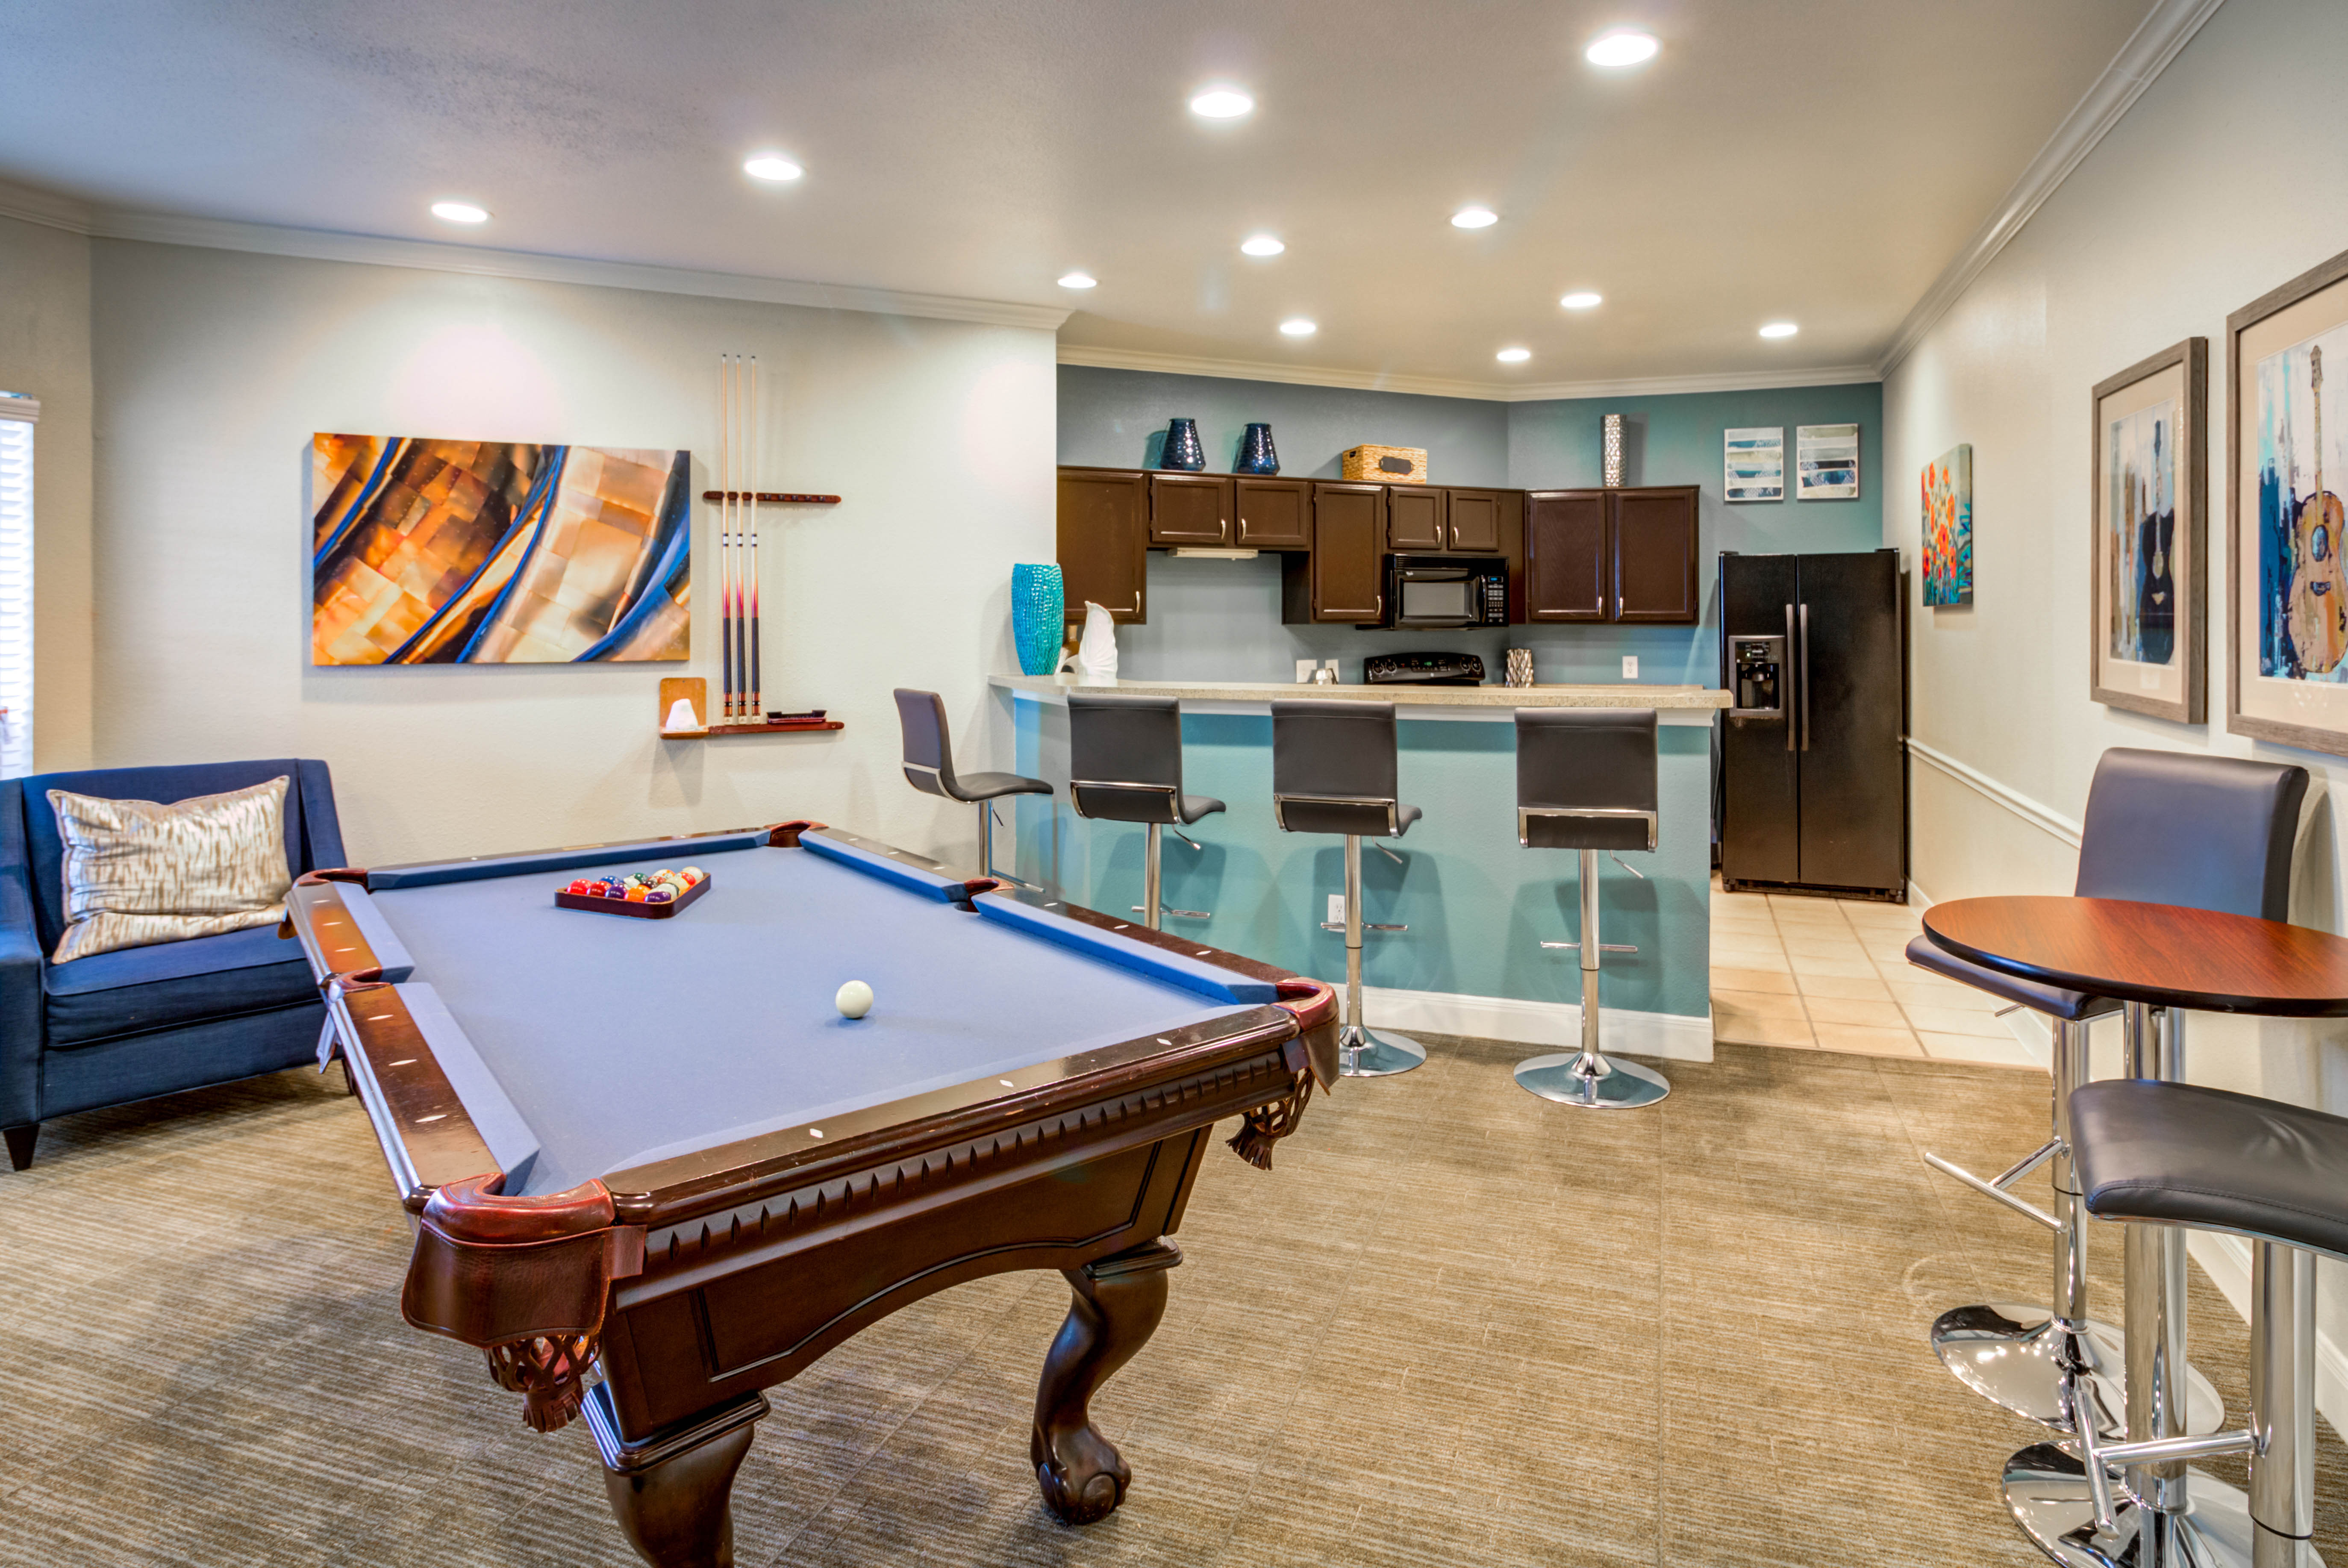 Pool Table At Signature Point Apartments In League City TX